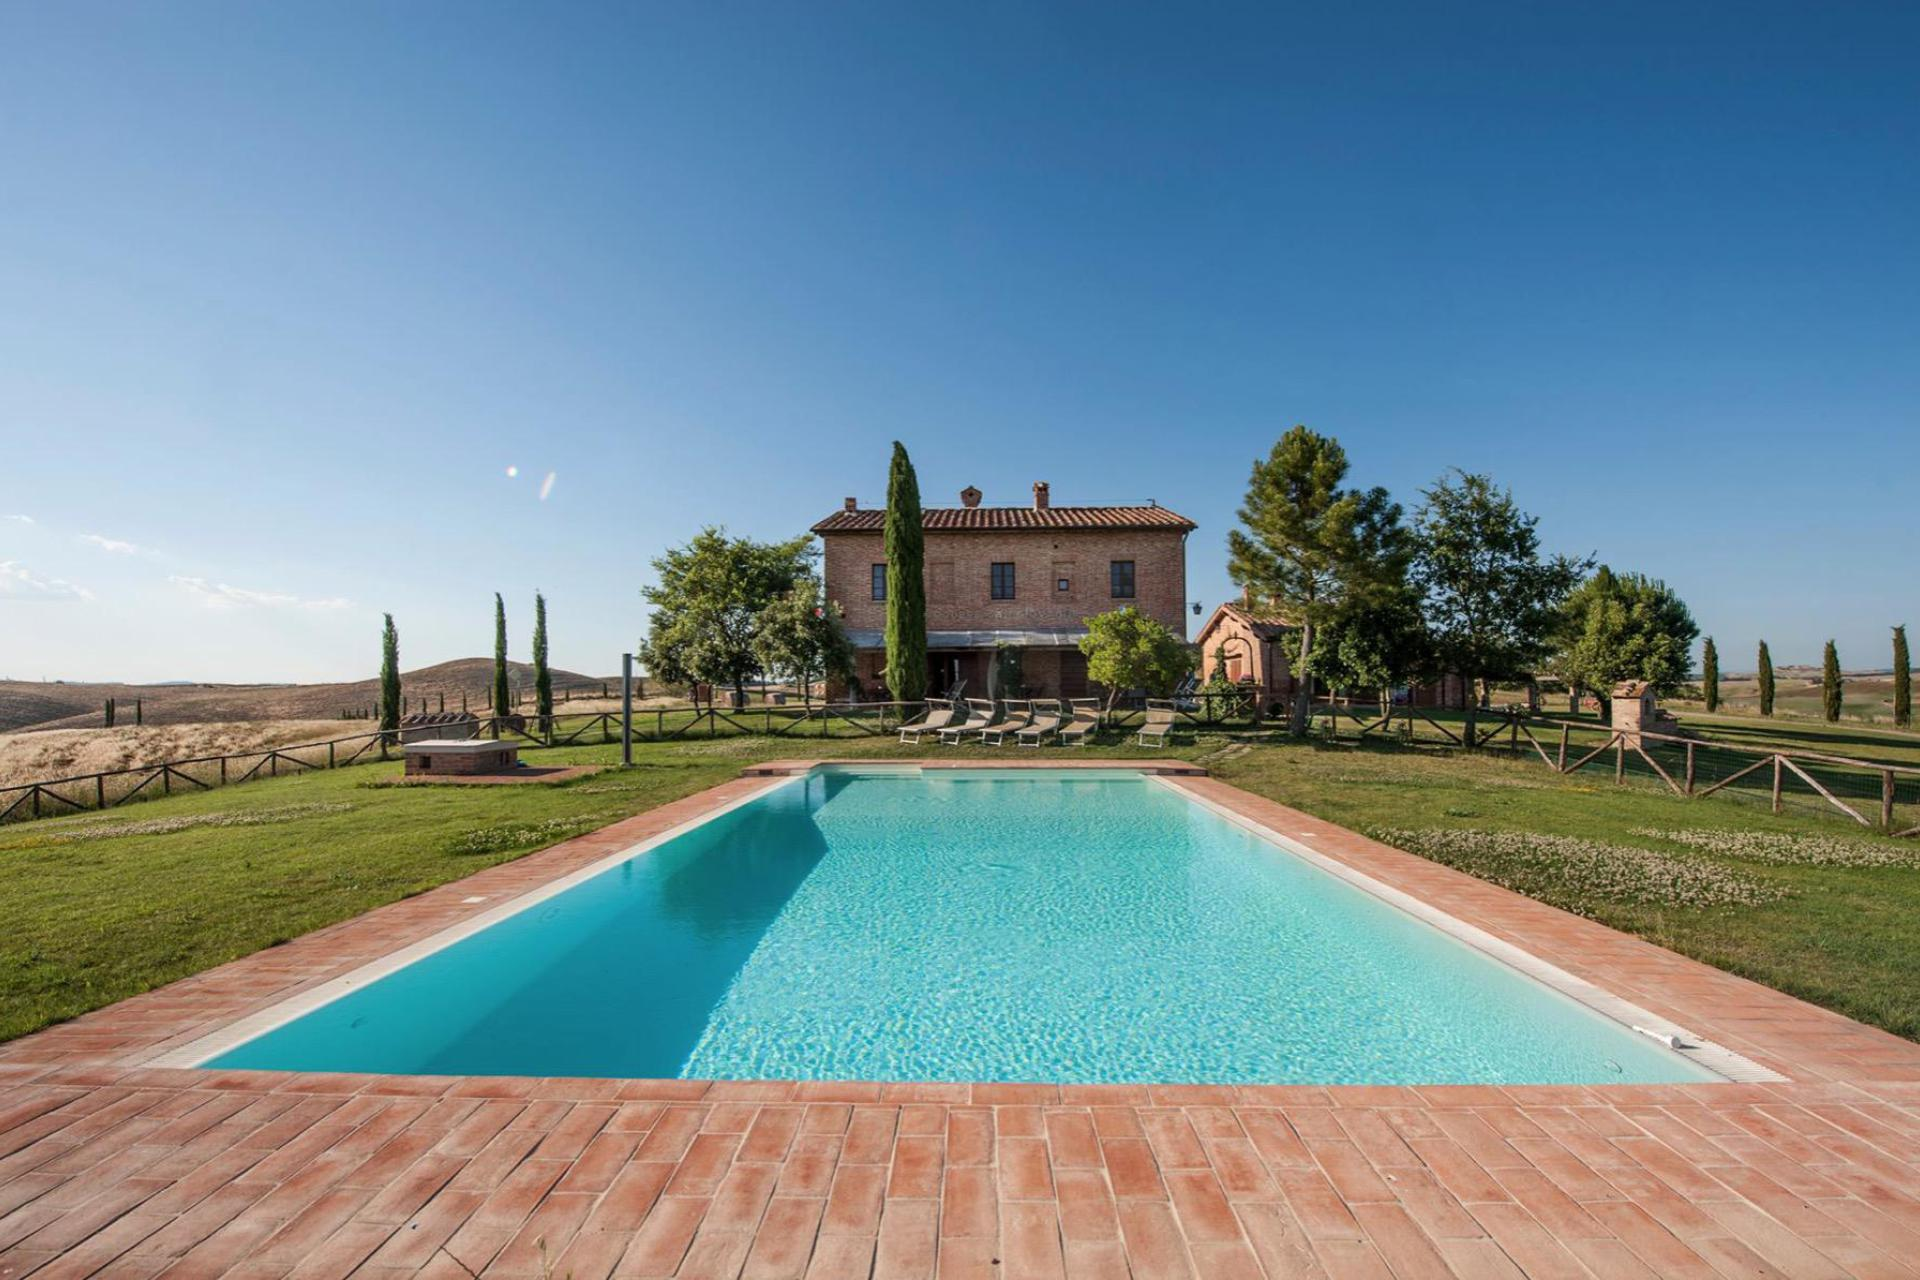 Agriturismo Tuscany Agriturismo Siena for peace, nature, luxury and comfort